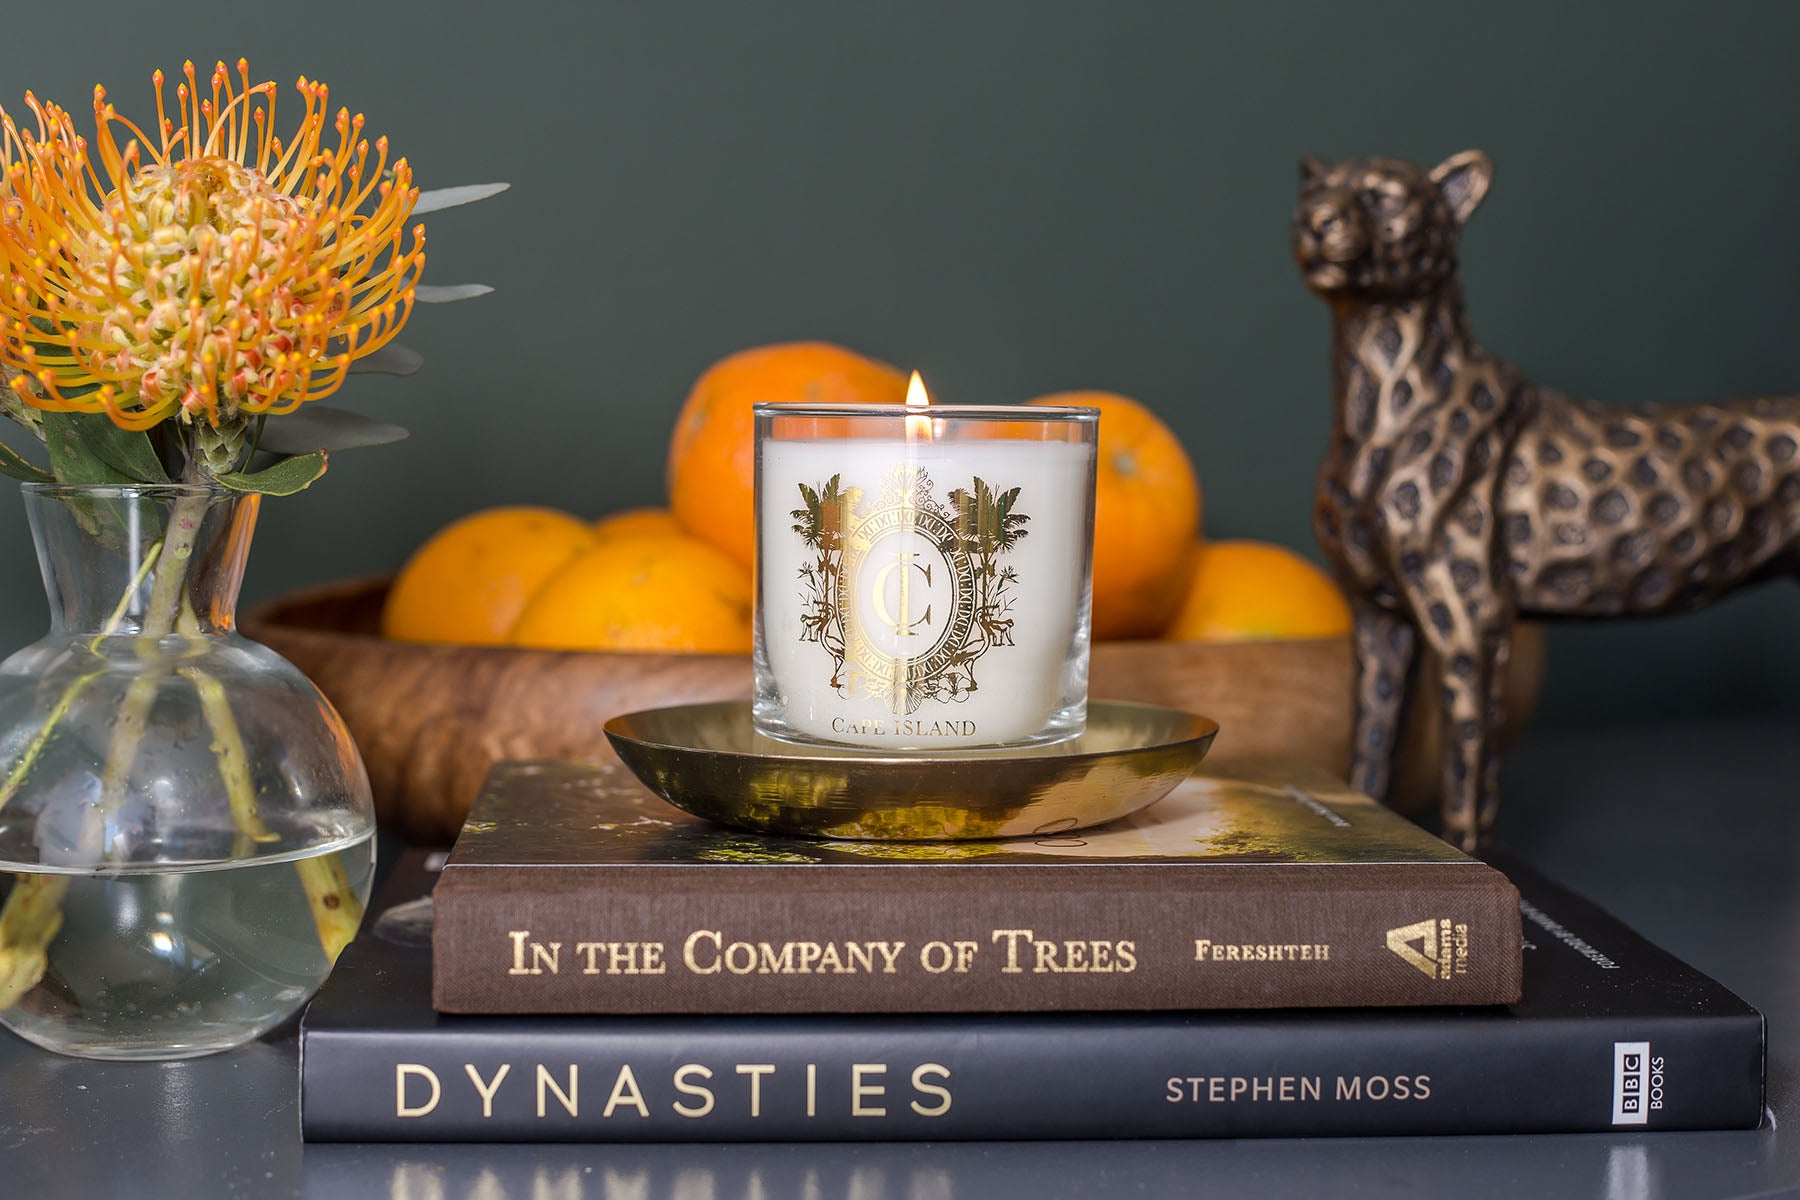 The Cape Island Safari Days candle Cape Island luxury candles, soap products and home fragrances are available at Sarza home goods and furniture store in Rye New York.